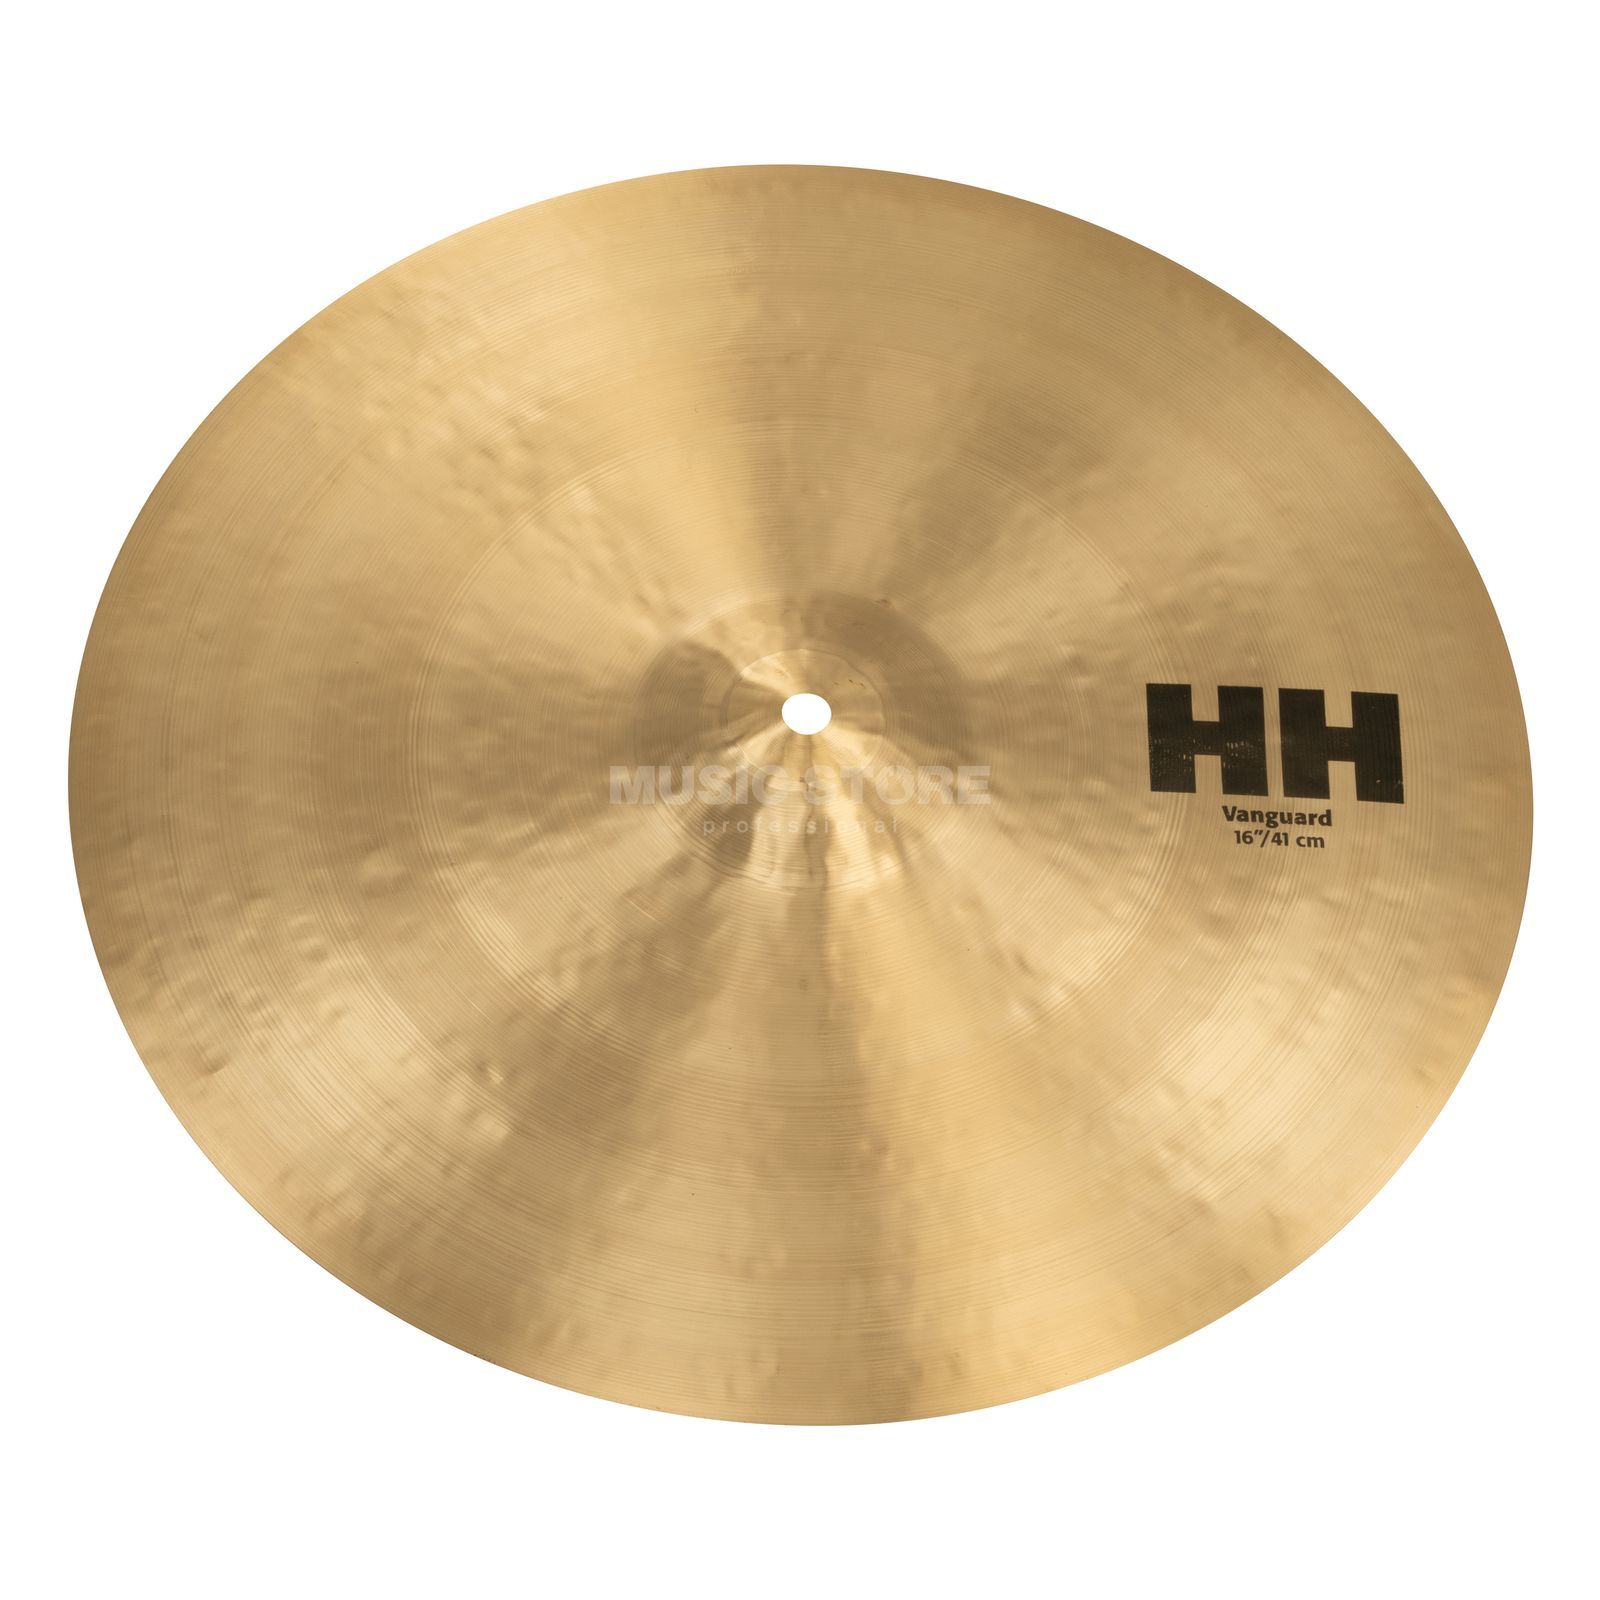 "Sabian HH Vanguard Crash 16"", Remastered Product Image"